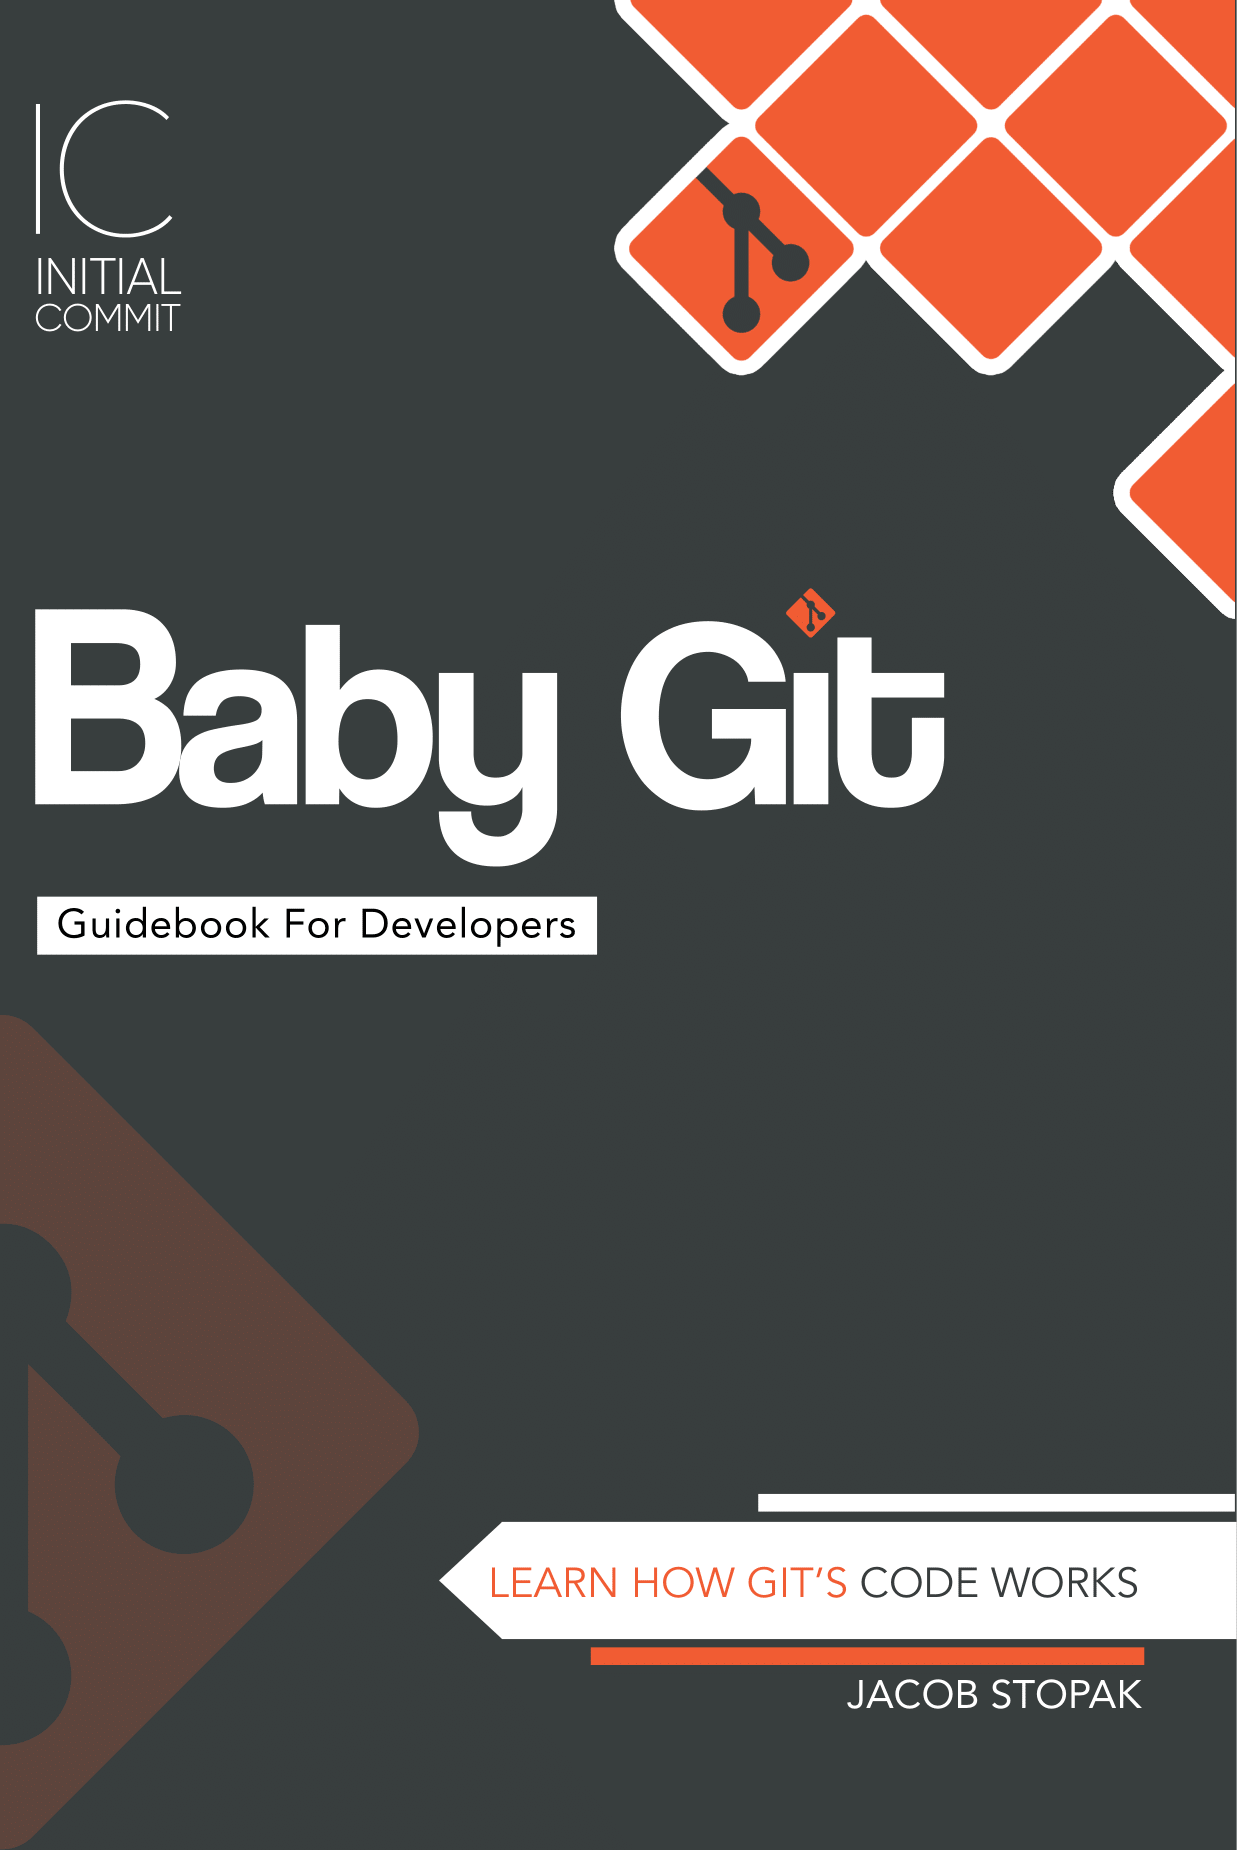 Image of the cover of the Baby Git Guidebook for Developers